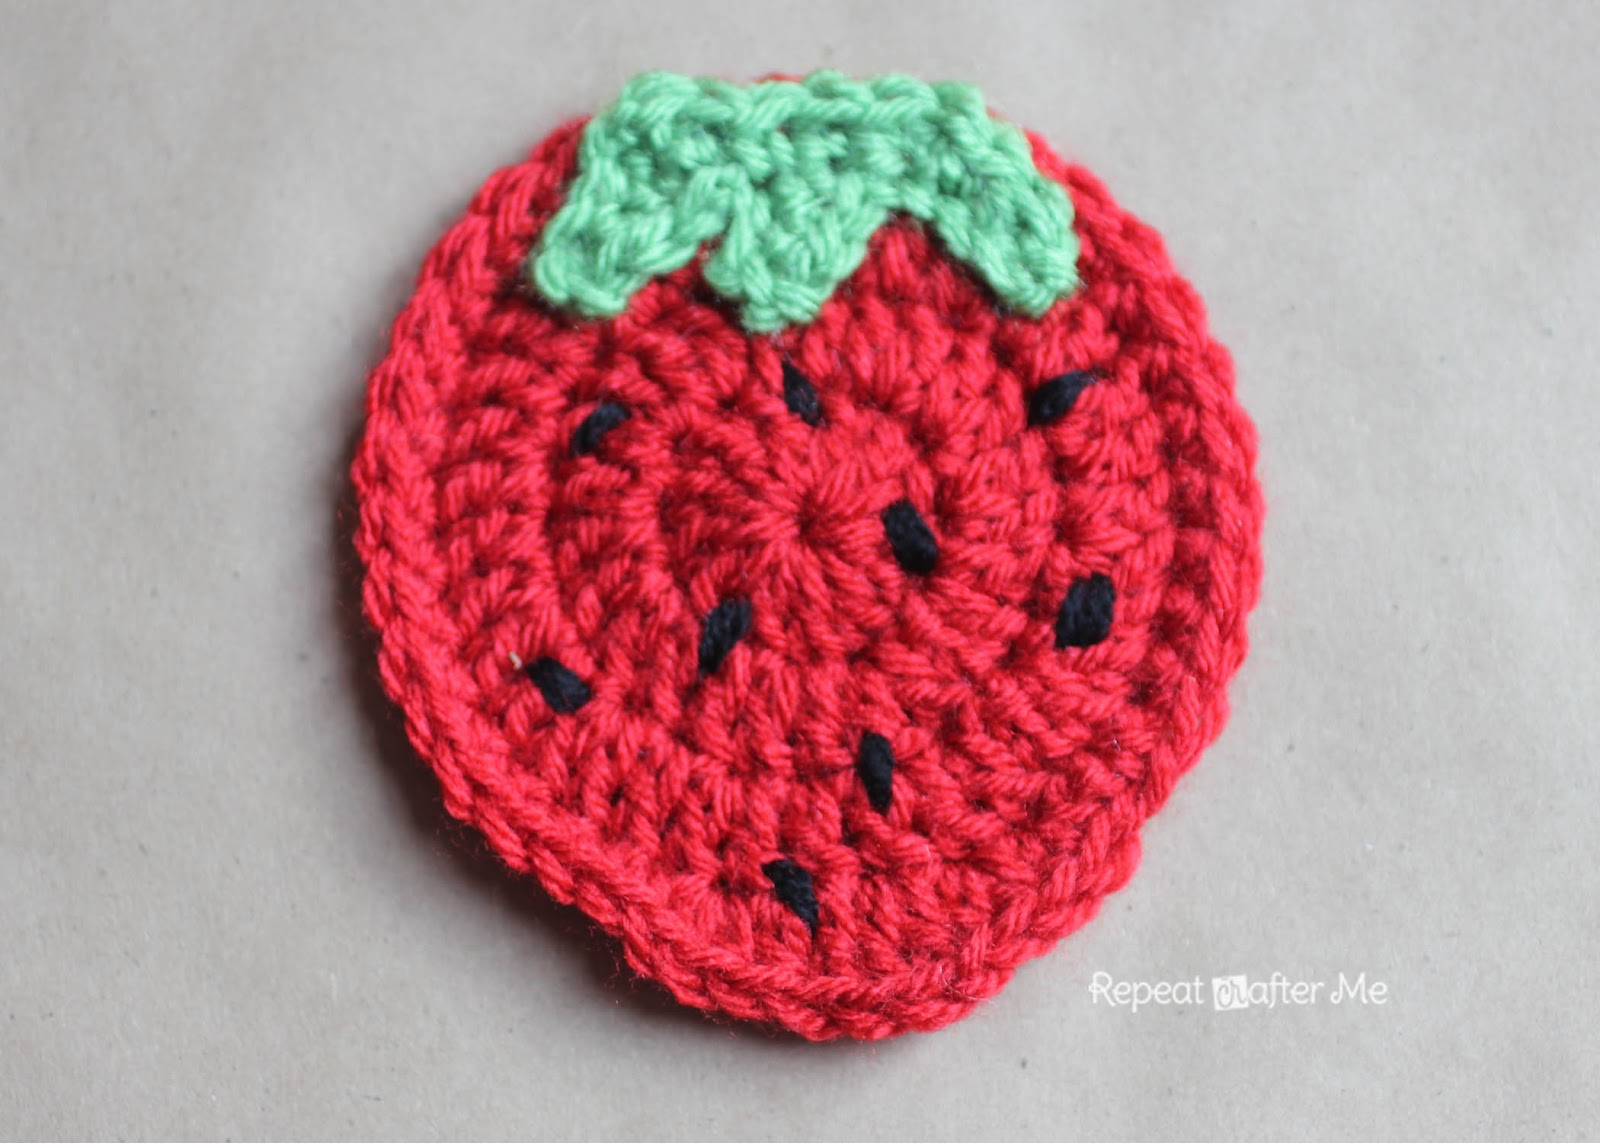 Crochet Fruit Coasters Free Pattern : Crochet Fruit Coasters Pattern - Repeat Crafter Me